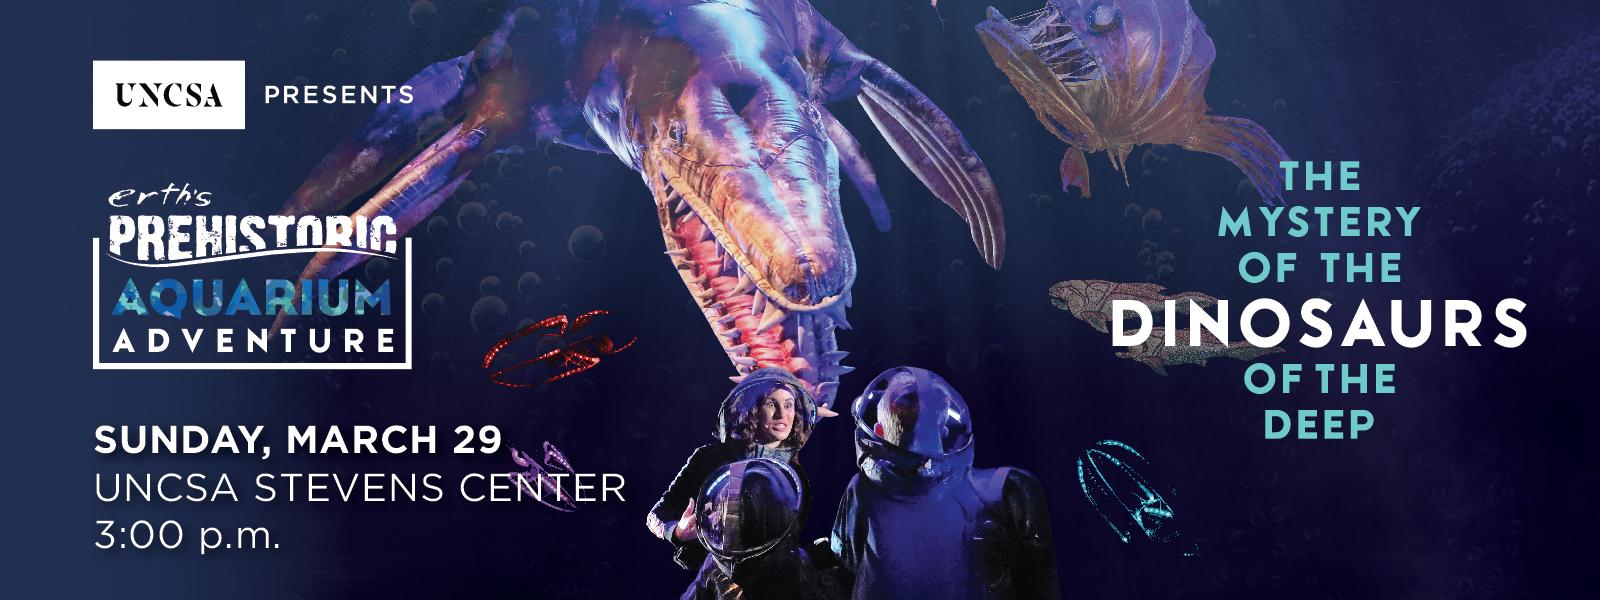 Erth's Prehistoric Aquarium Adventure explores the mystery of the dinosaurs of the deep!>>BUY TICKETS